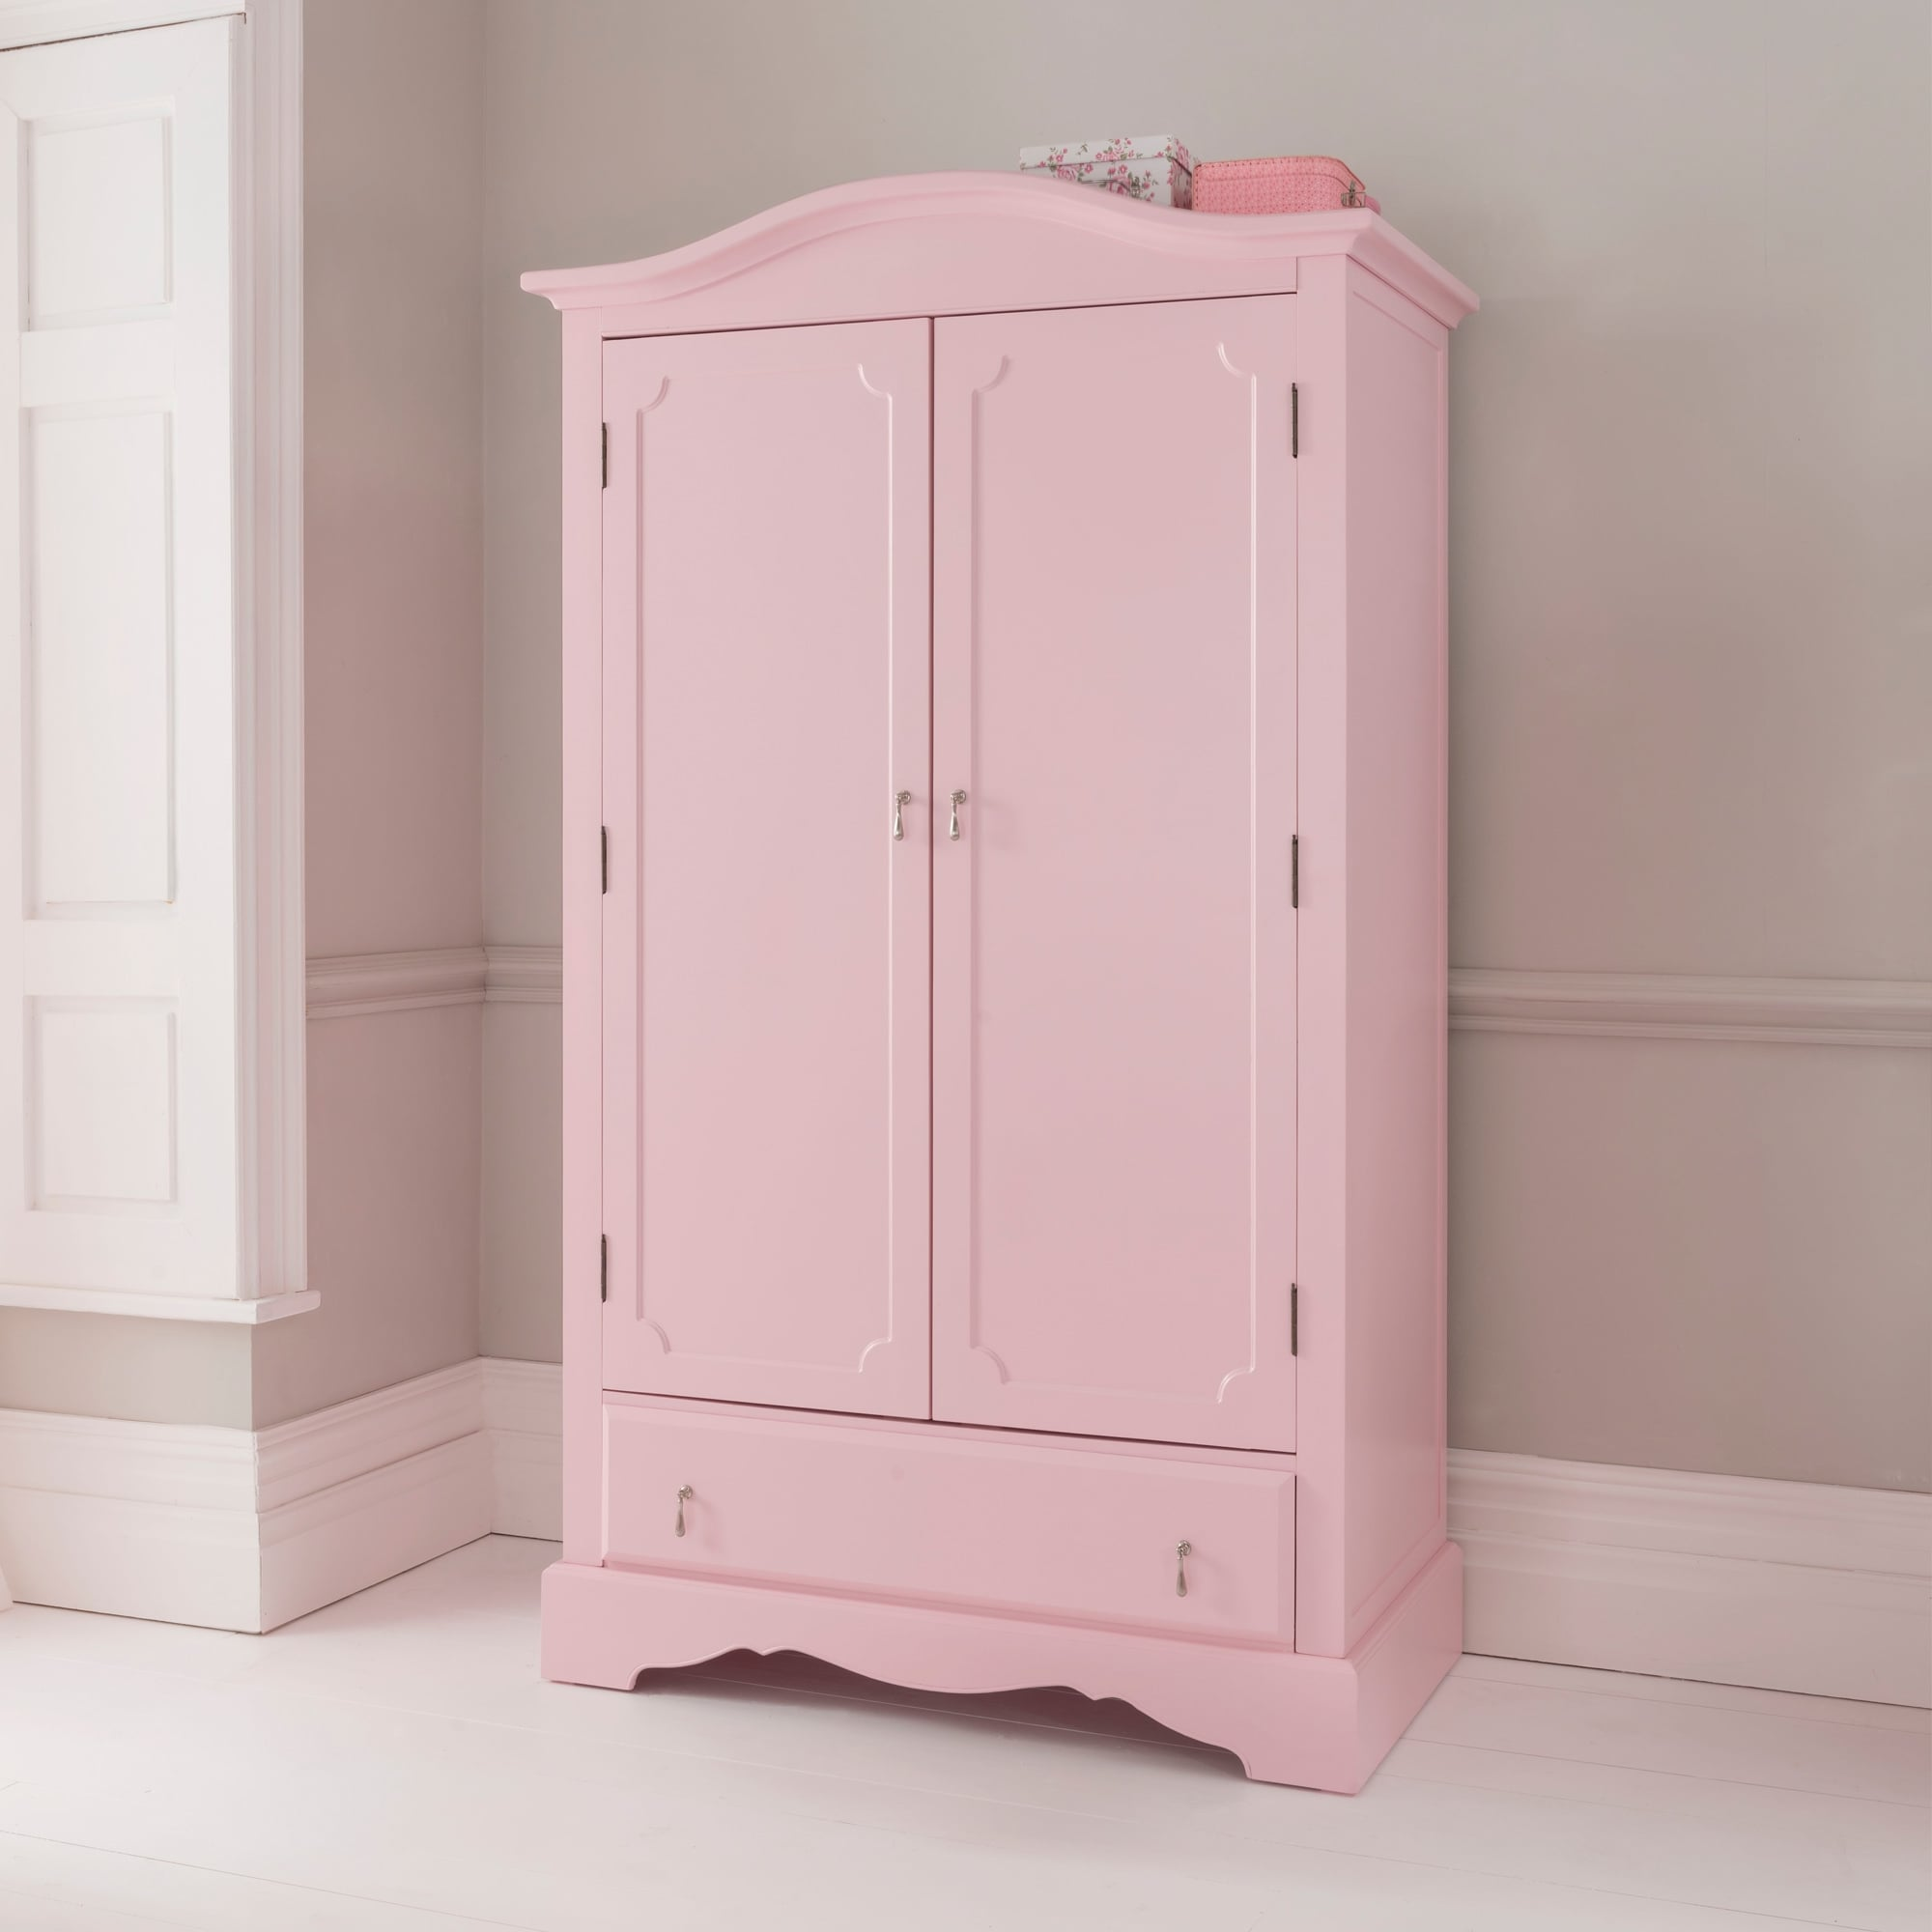 Antique French Style Wardrobe  Shabby Chic Bedroom